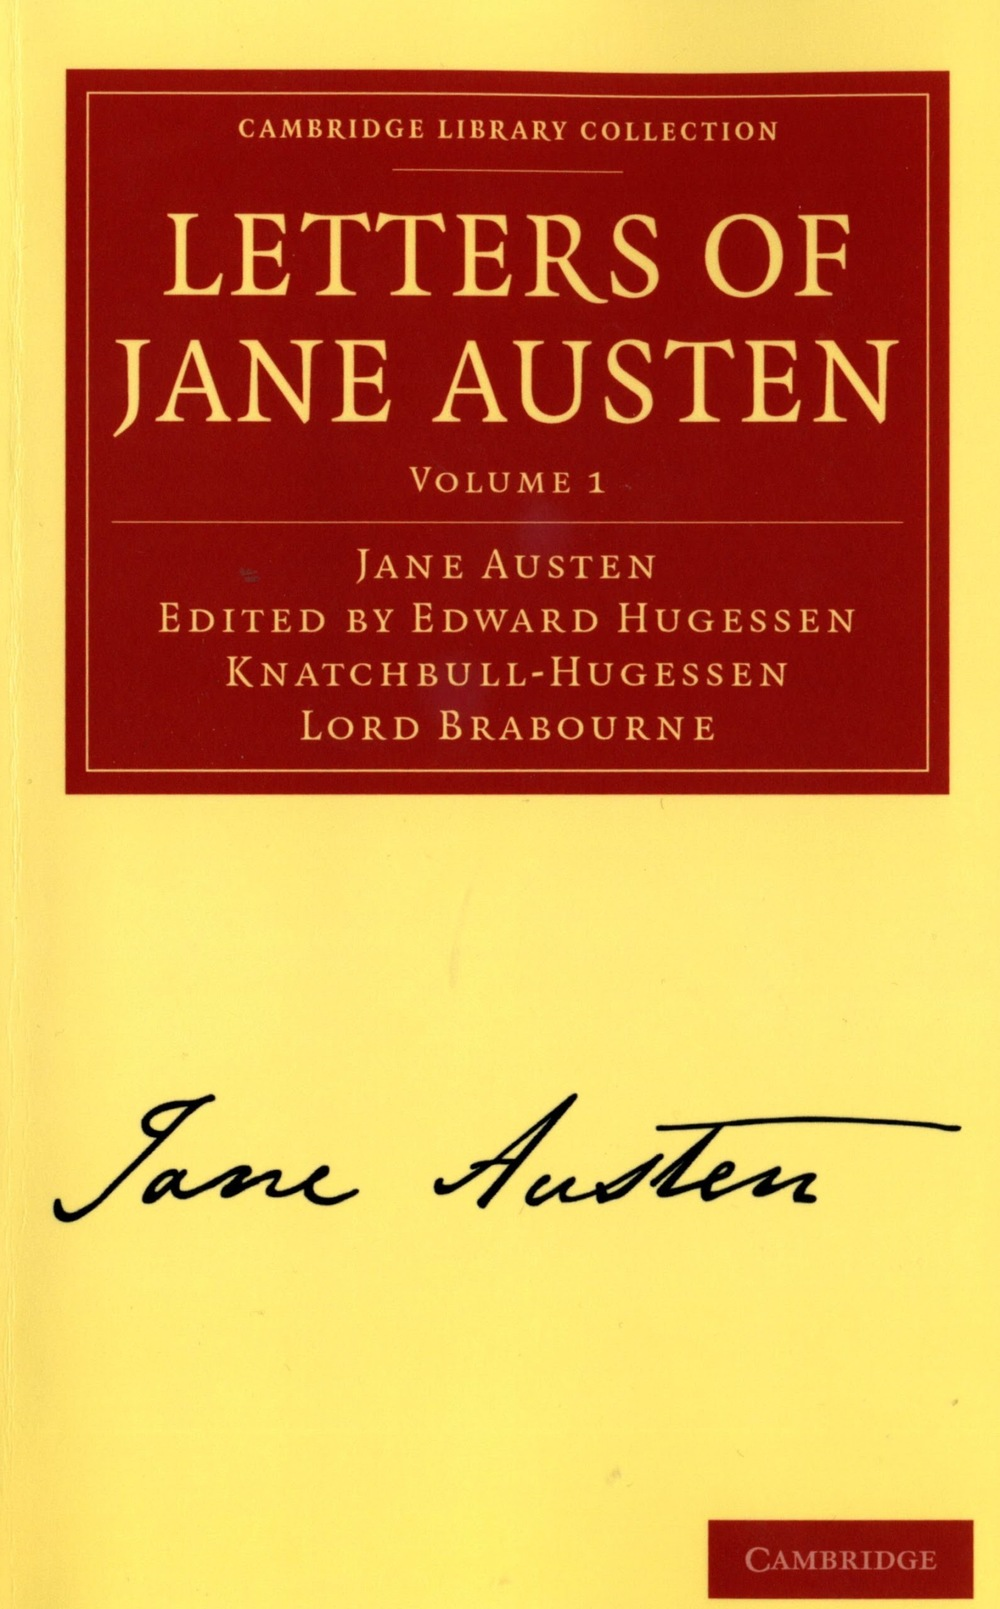 importance of letters in pride and prejudice Context of text in pride and prejudice english literature essay print both pride and prejudice by jane austen and letters of no importance in the world.